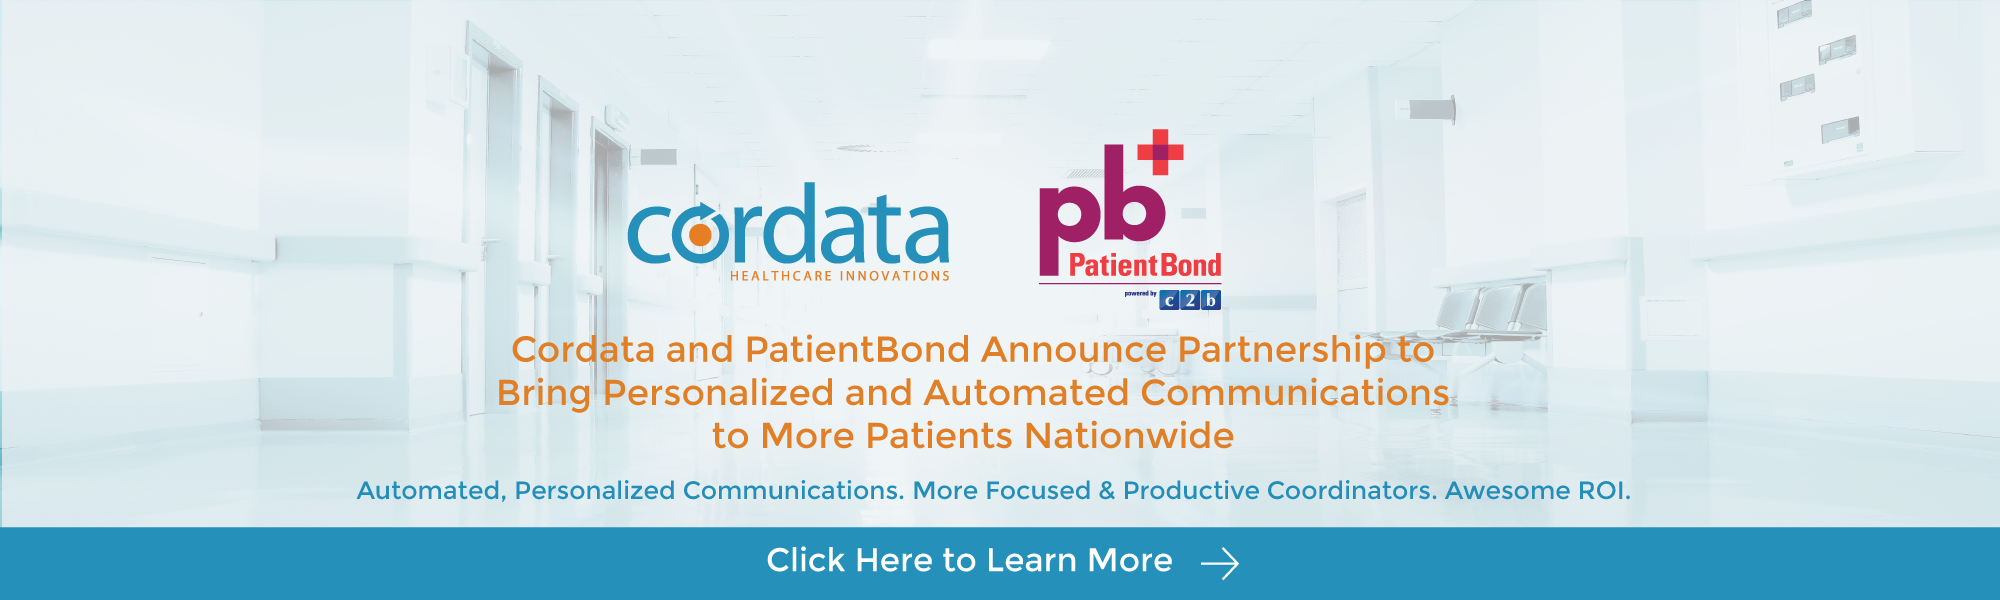 Cordata_homepage_slider_PatientBond-Announcement-v3.png